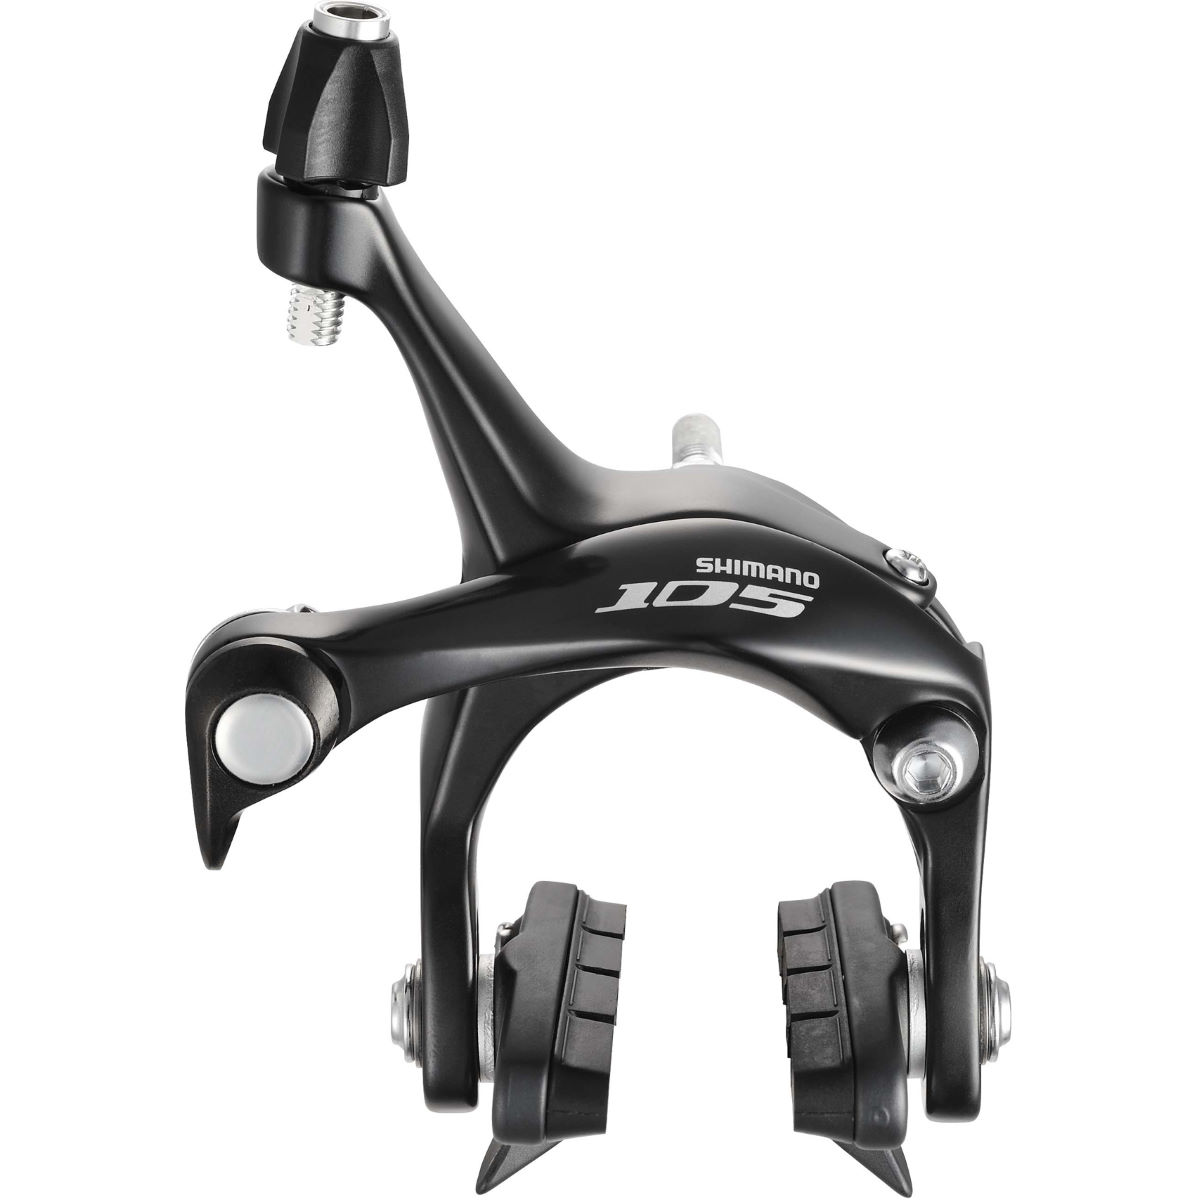 Shimano 105 5700 Dual-Pivot Brake Calipers